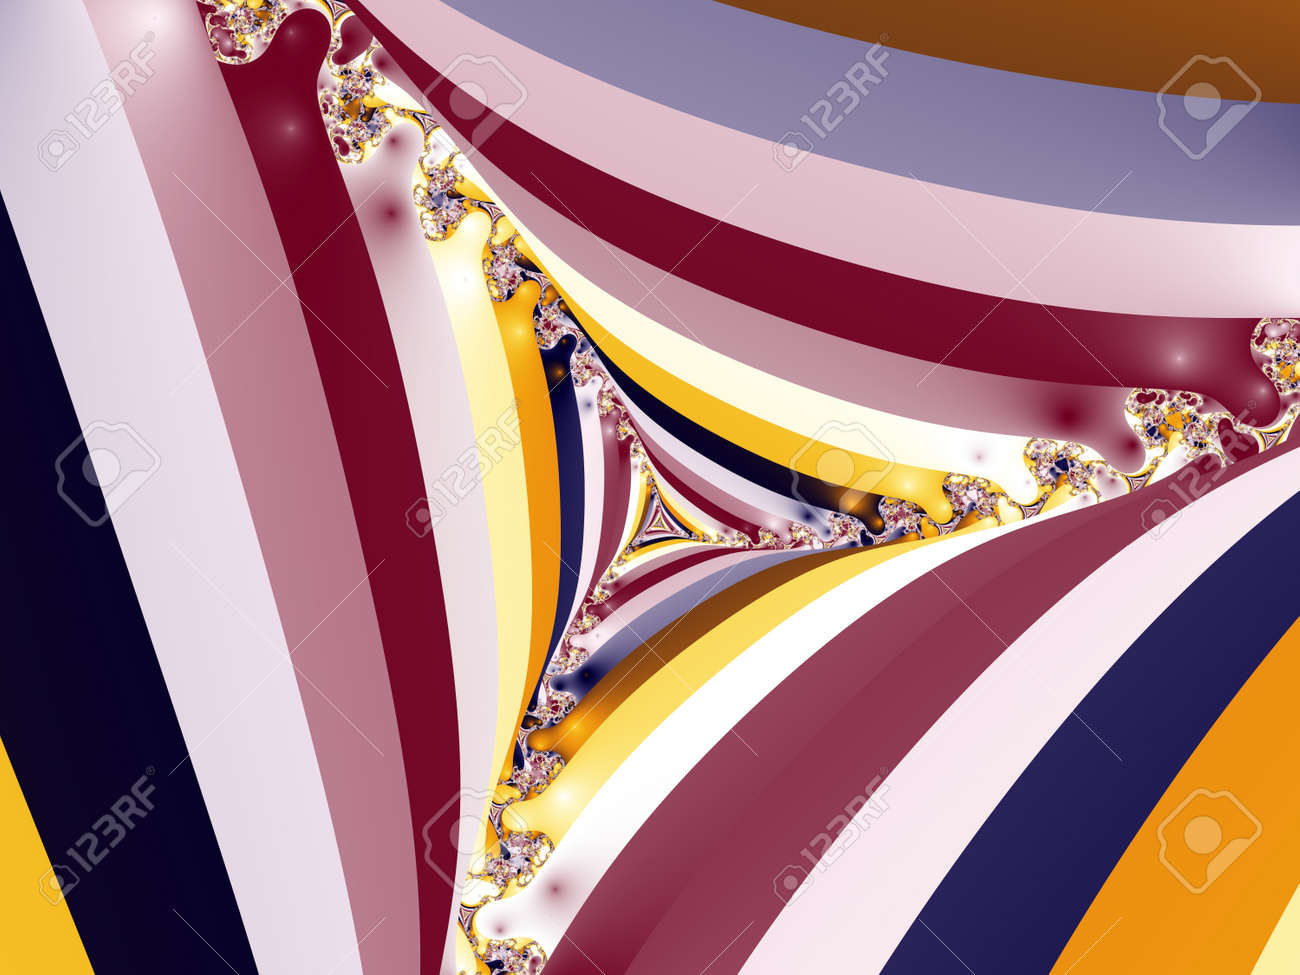 3D-Illustration of a zoom into an infinite mathematical fractal set - 169911849